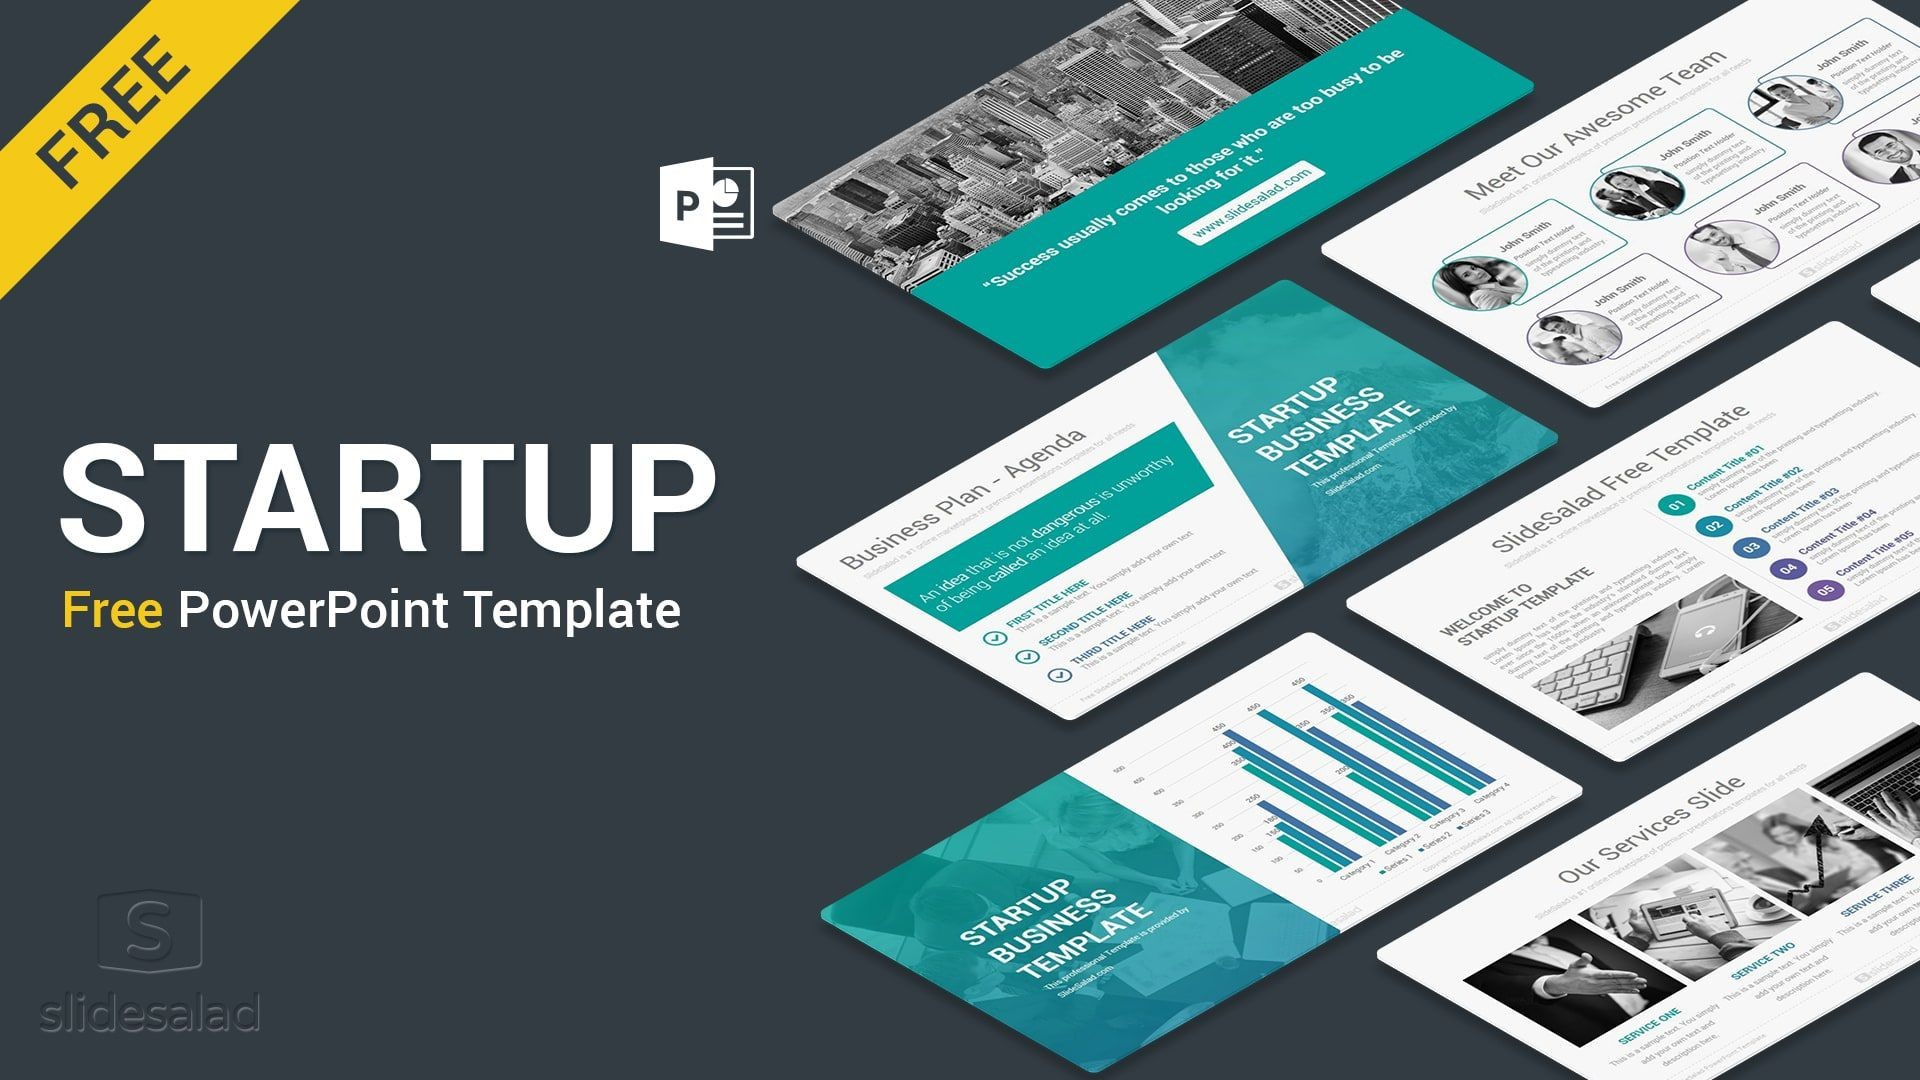 009 Formidable Startup Busines Plan Template Ppt Photo  Free1920